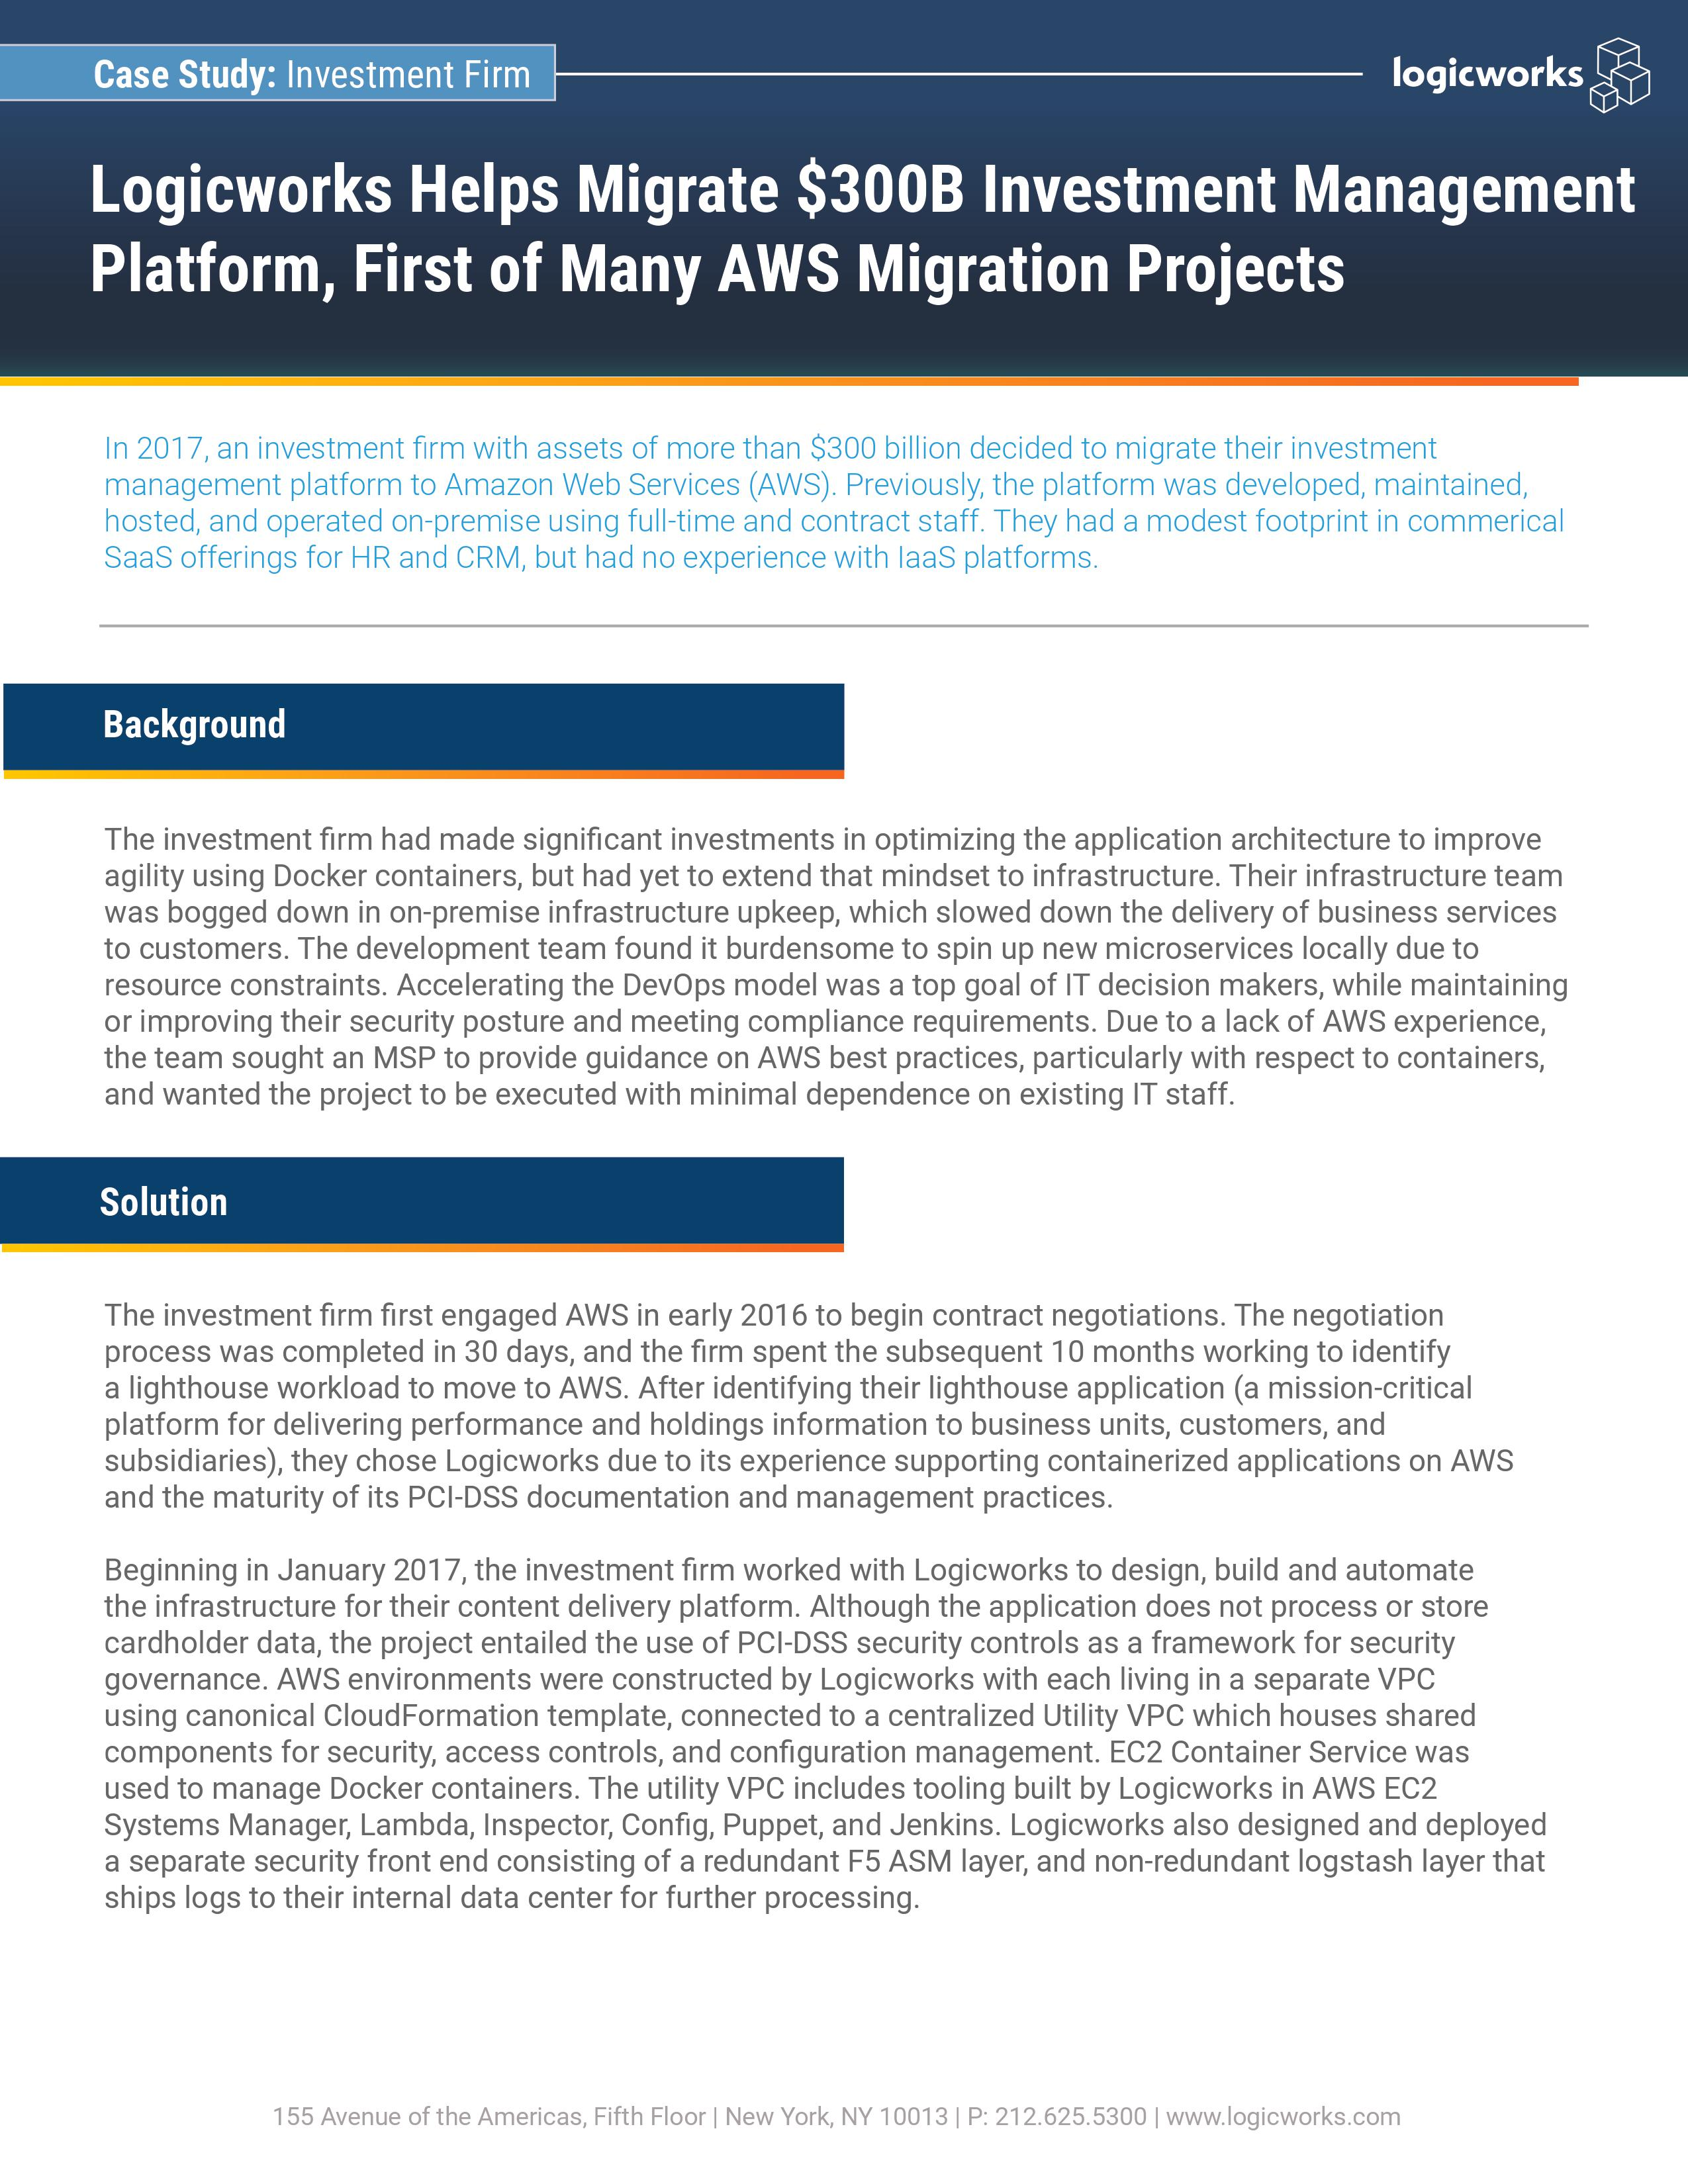 $300B Investment Firm Migrate On-Premise Platform to AWS